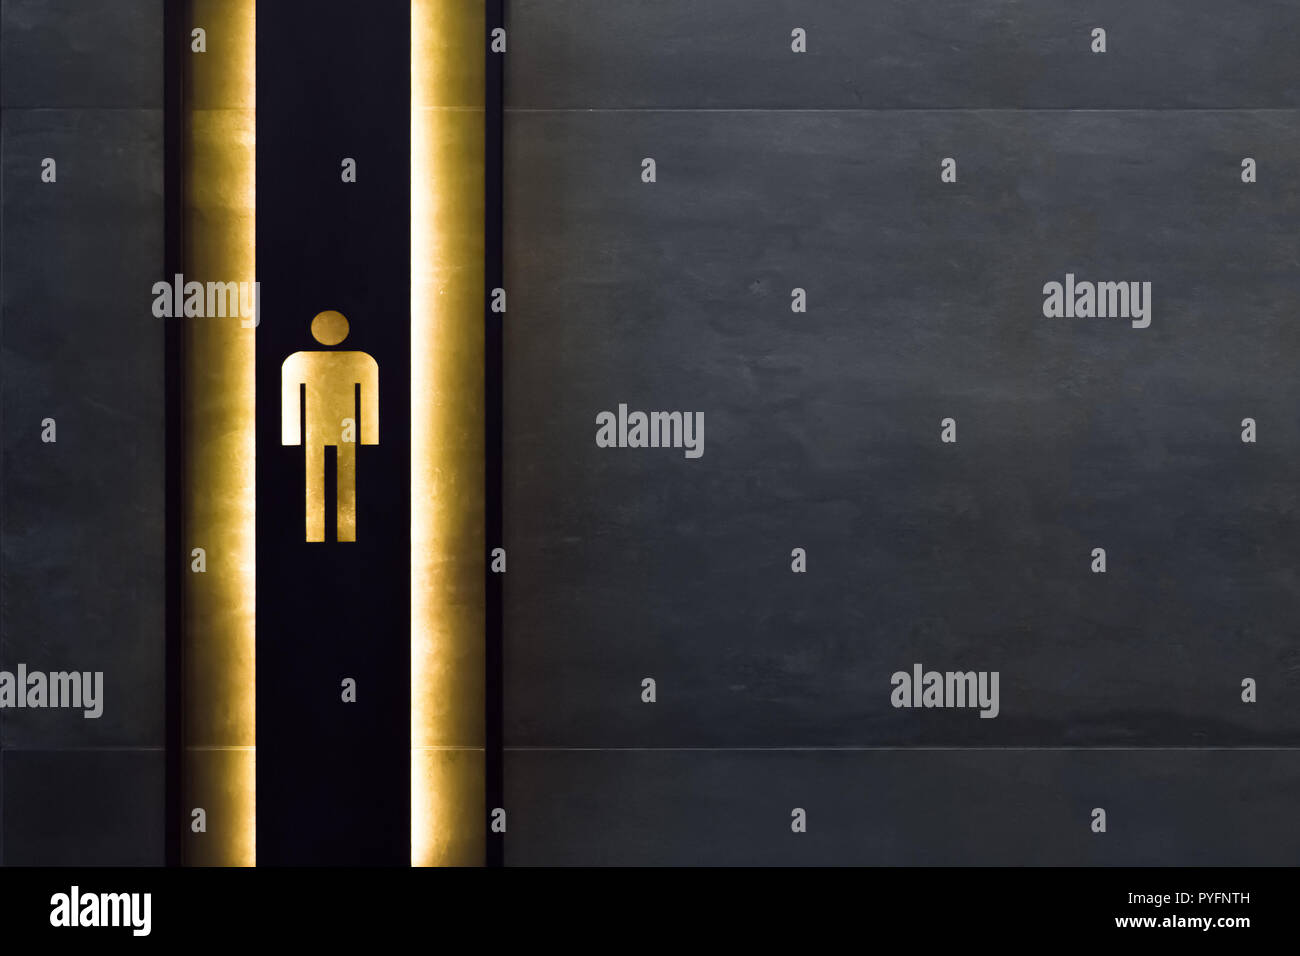 Male restroom sign. Restroom signs in public place. Important signs and symbols concept. Simple sign of WC. Restroom concept. Restroom sign on a toilet door. - Stock Image